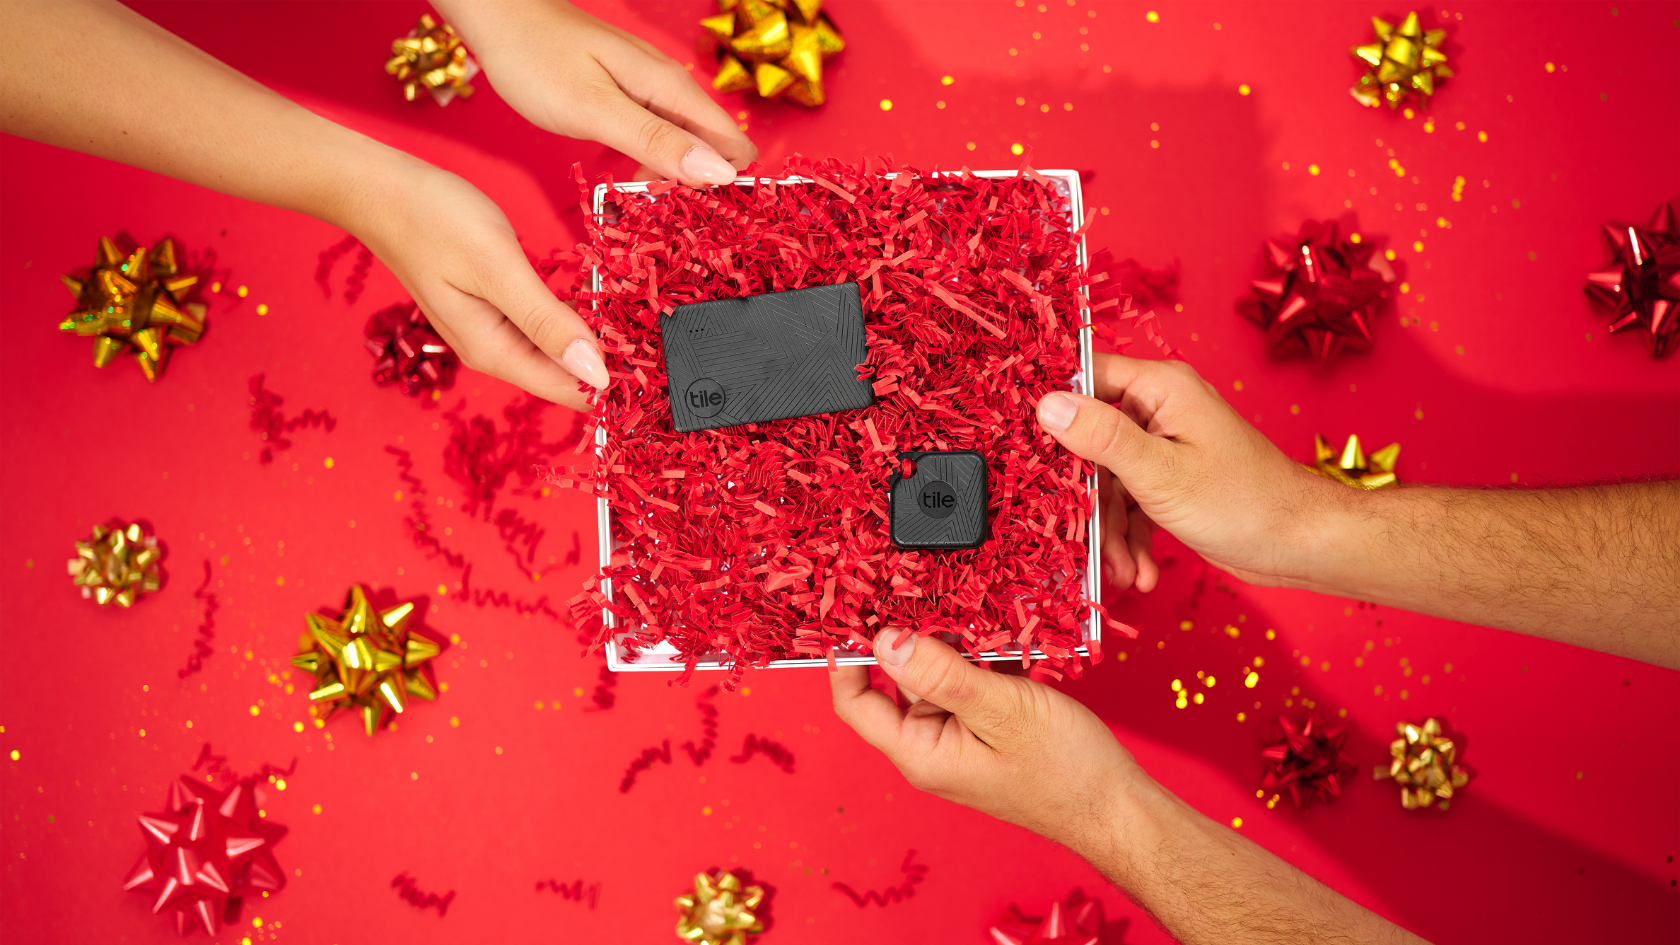 Shop the best holiday tech gifts in 2020 using Tile's holiday gift guide! Find something for everyone -- no matter who's on your list.